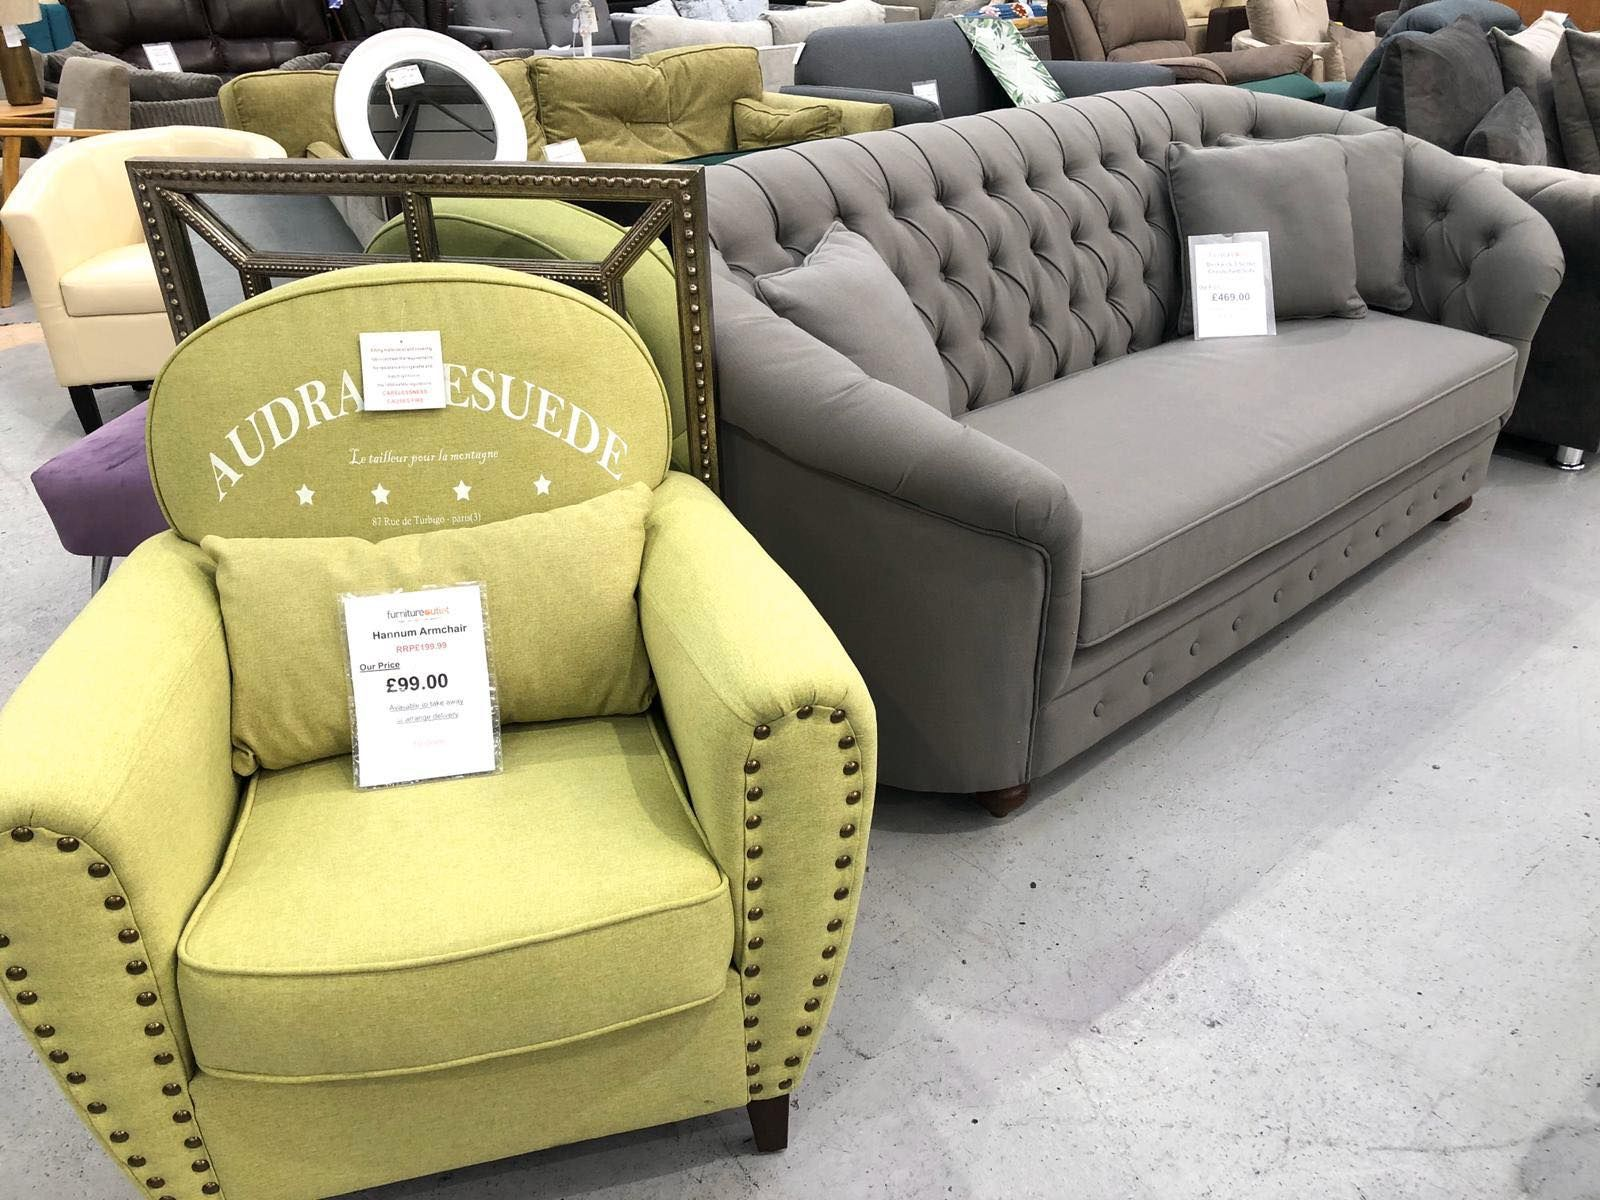 Furniture Outlet Stores Dagenham East London Furniture Furniture Outlet Stores Living Room Furniture